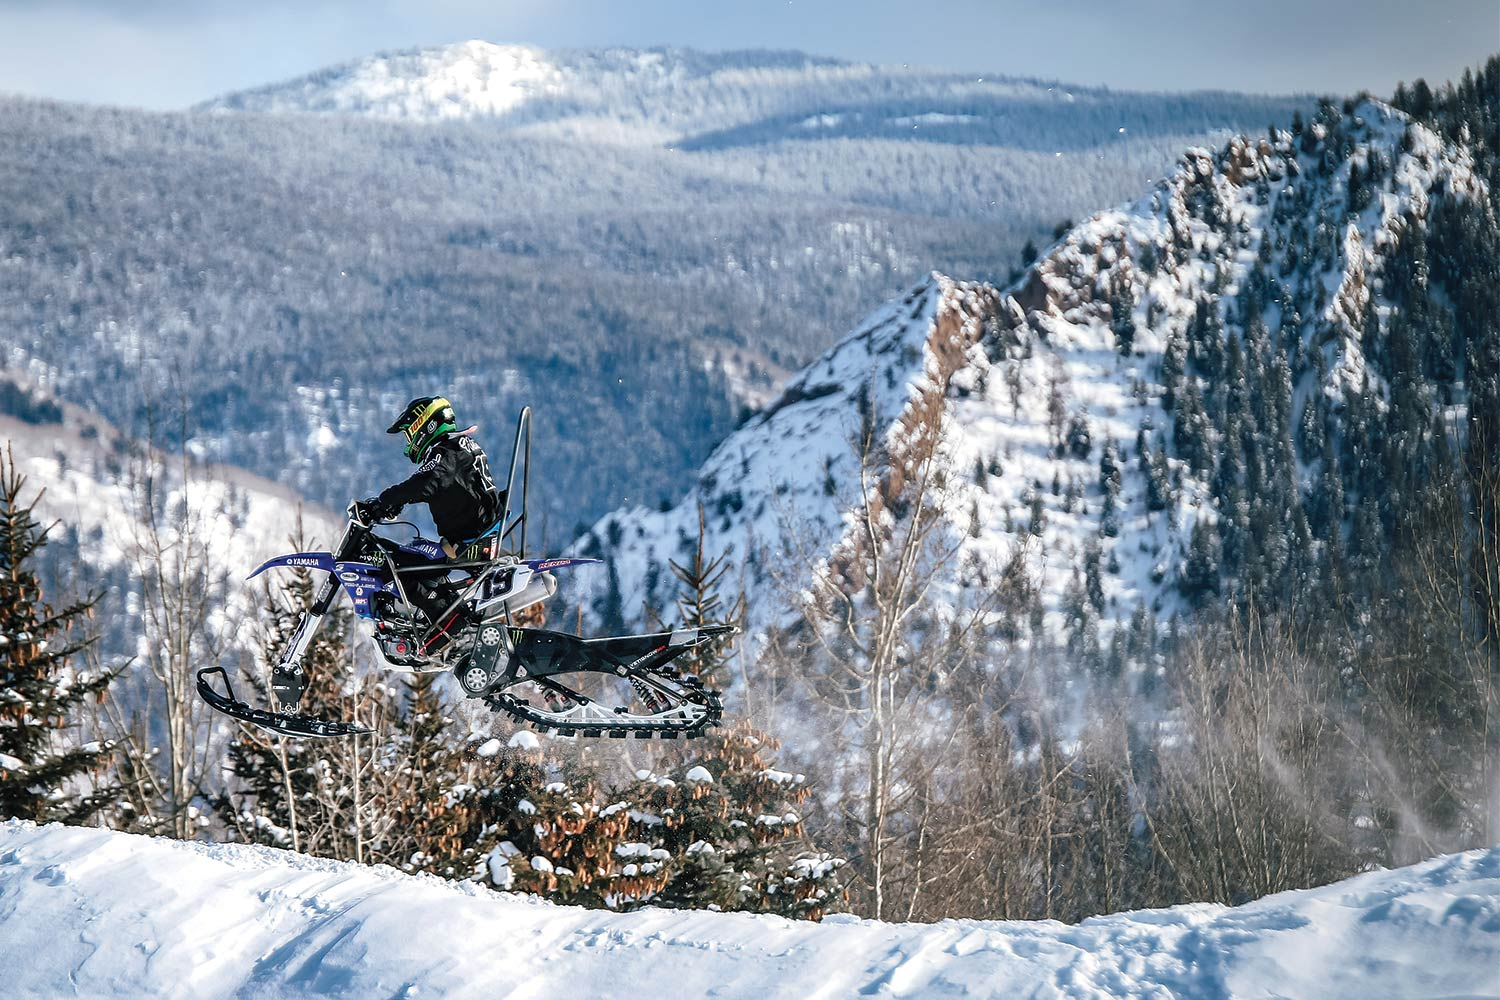 Pro motocross legend Doug Henry hovers above the Rocky Mountains on his way to an X Games gold medal in Para Snow BikeCross.